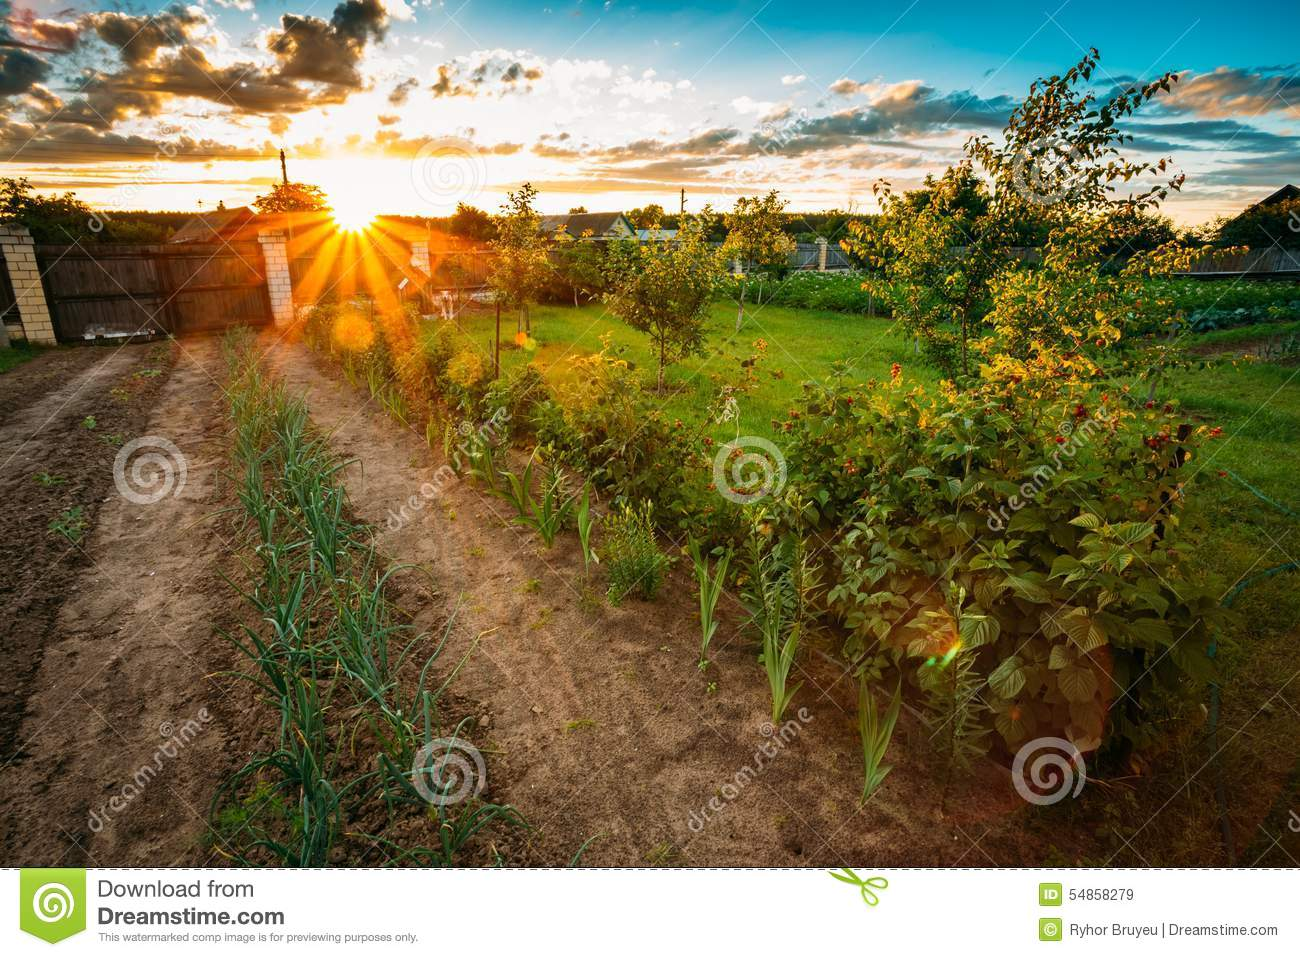 Raised Beds In Vegetable Garden Stock Image - Image of lettuce ...